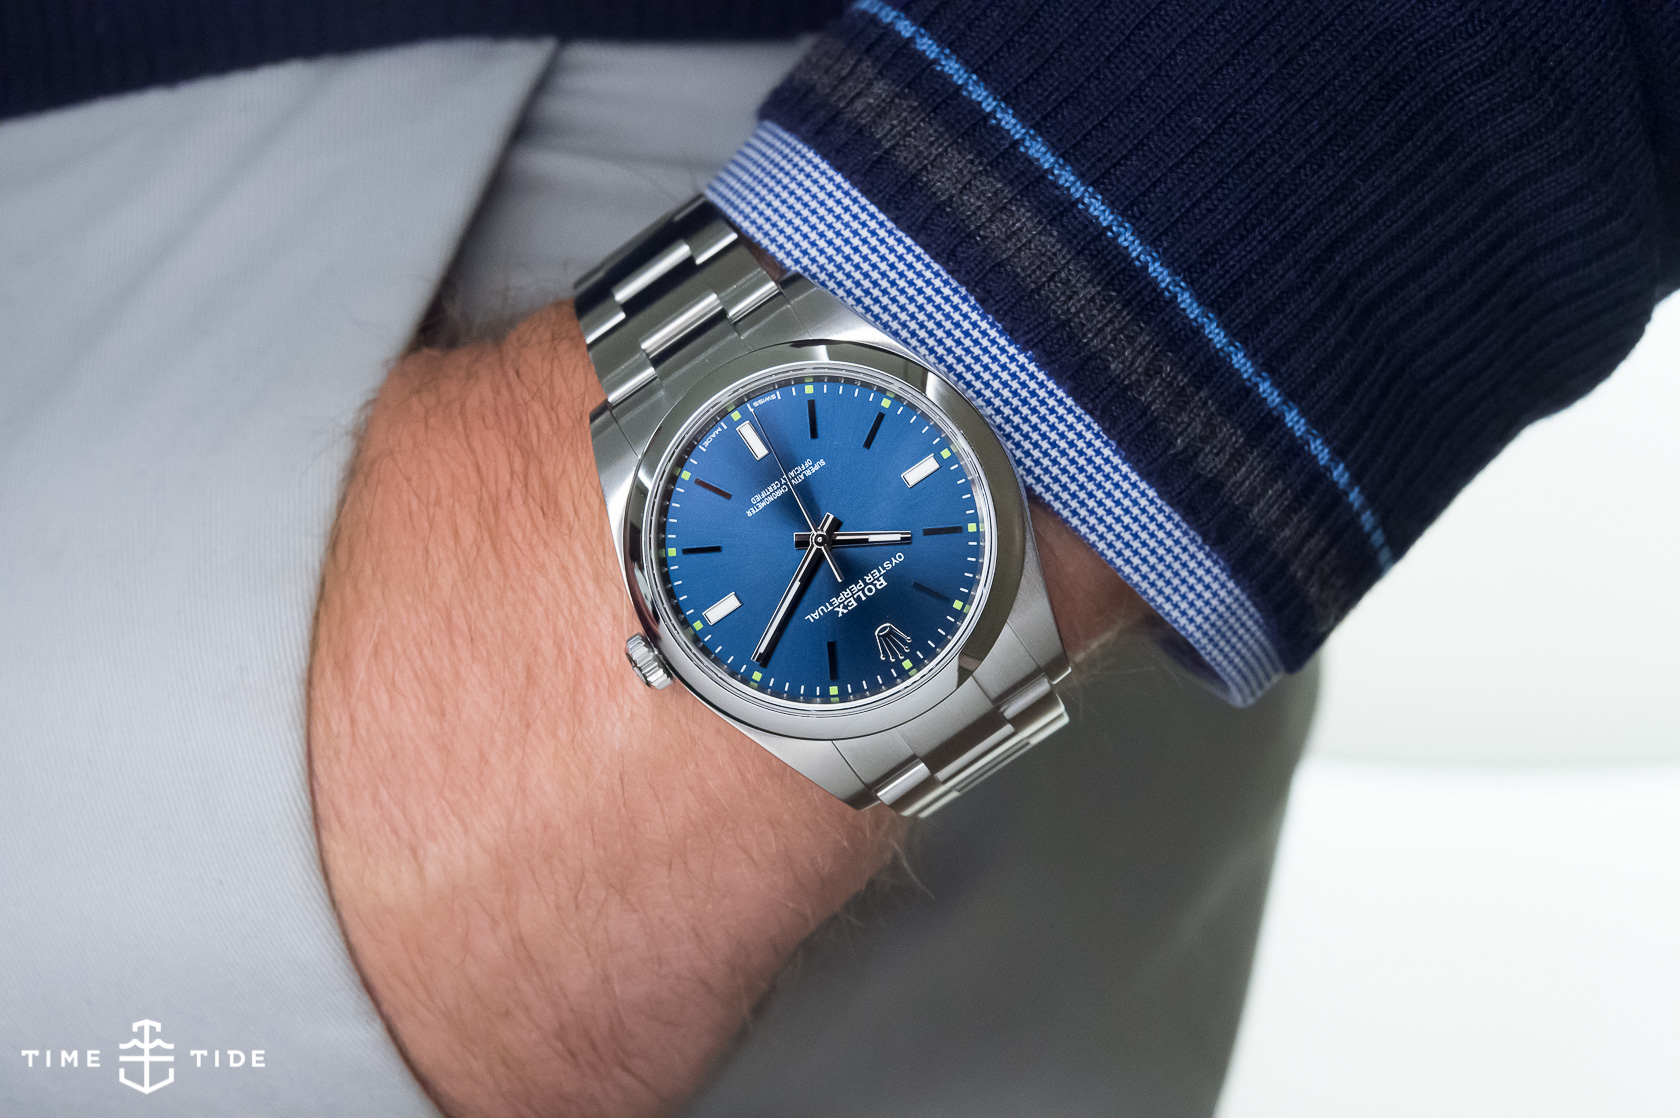 IN-DEPTH: The Rolex Oyster Perpetual 39 (ref. 114300)